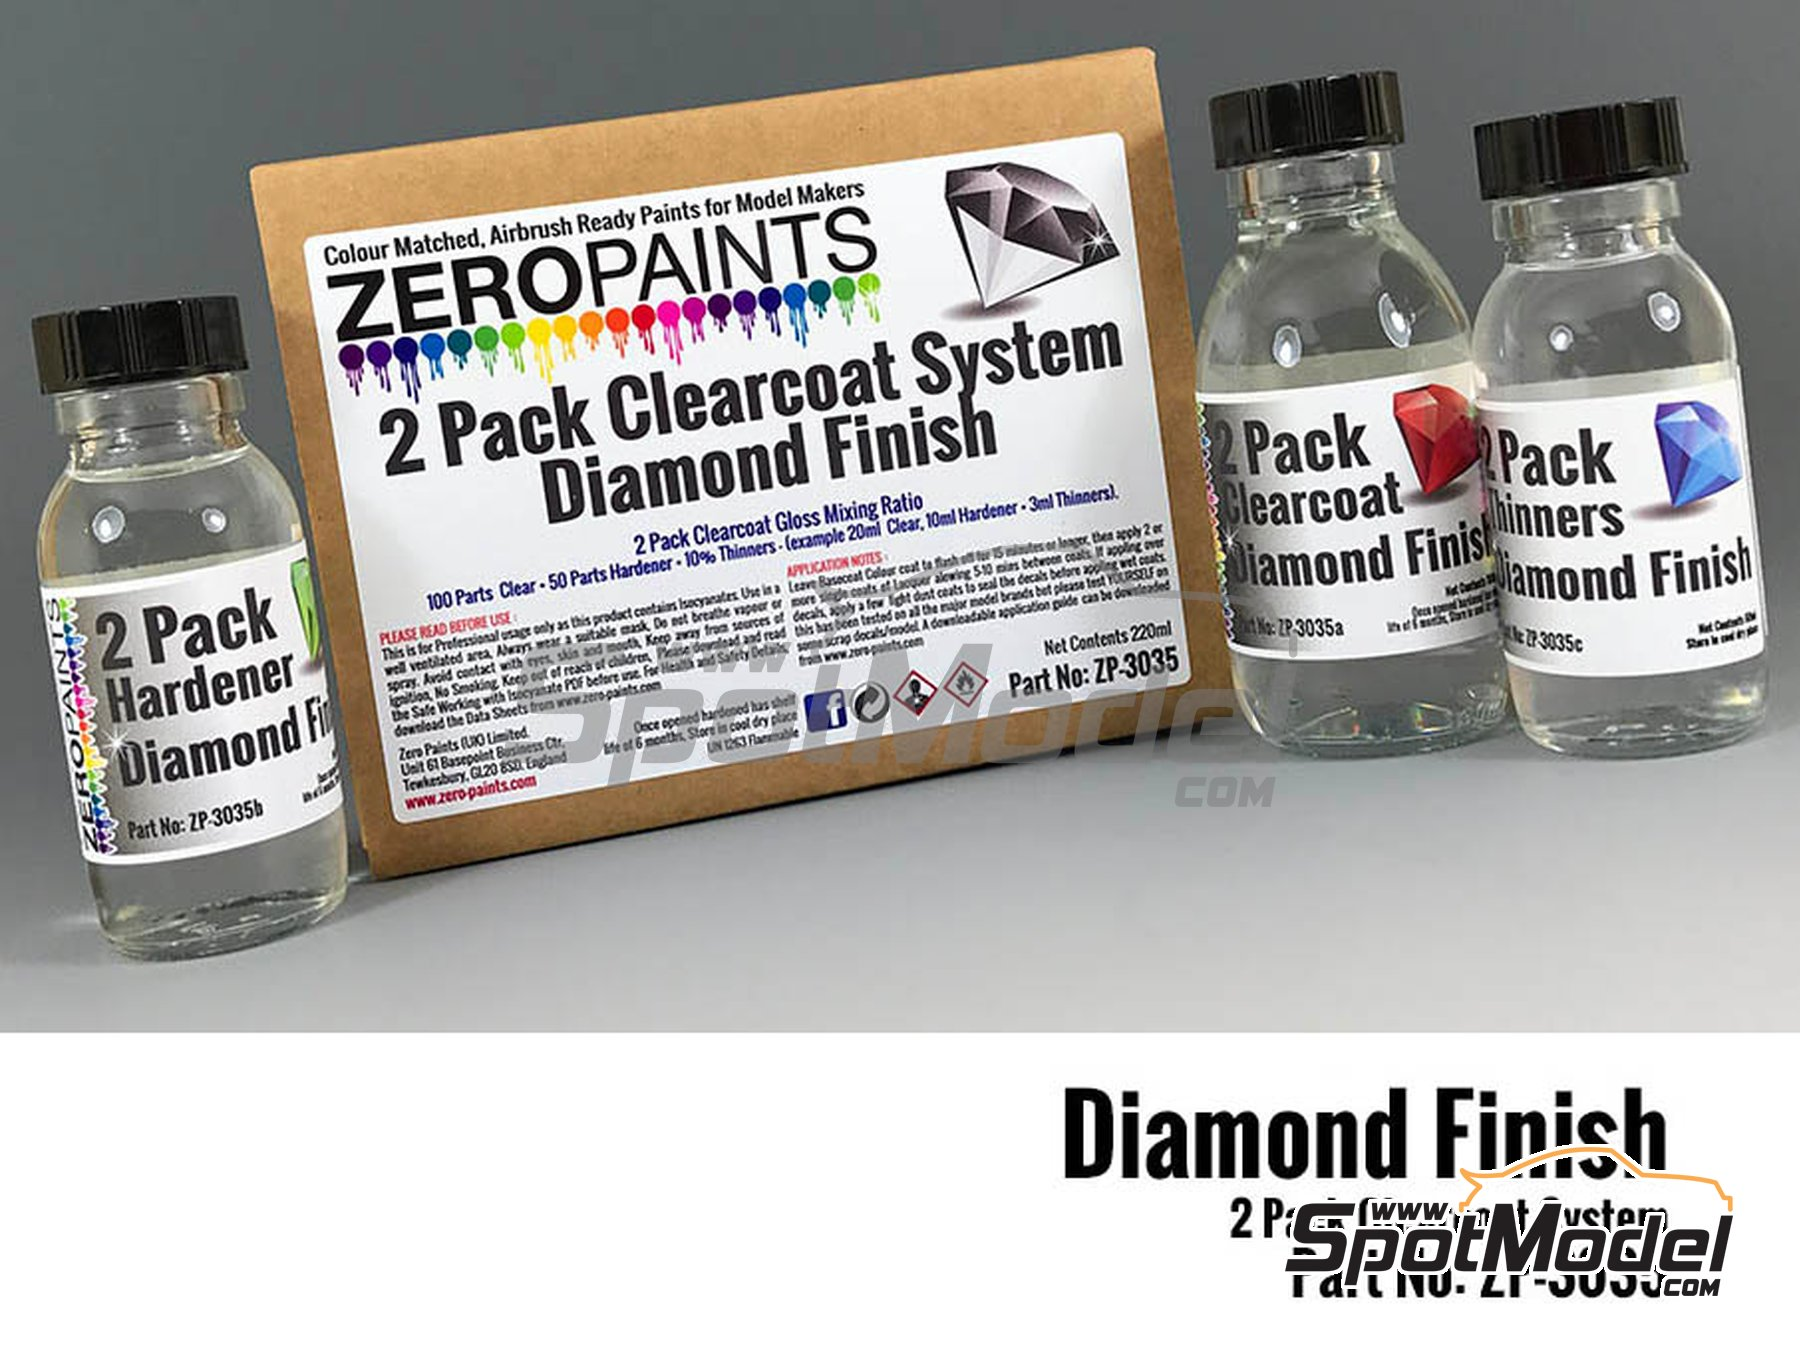 Image 1: Diamond Finish - 2 Pack GLOSS Clearcoat System - 2K Urethane | Barniz fabricado por Zero Paints (ref. ZP-3035)